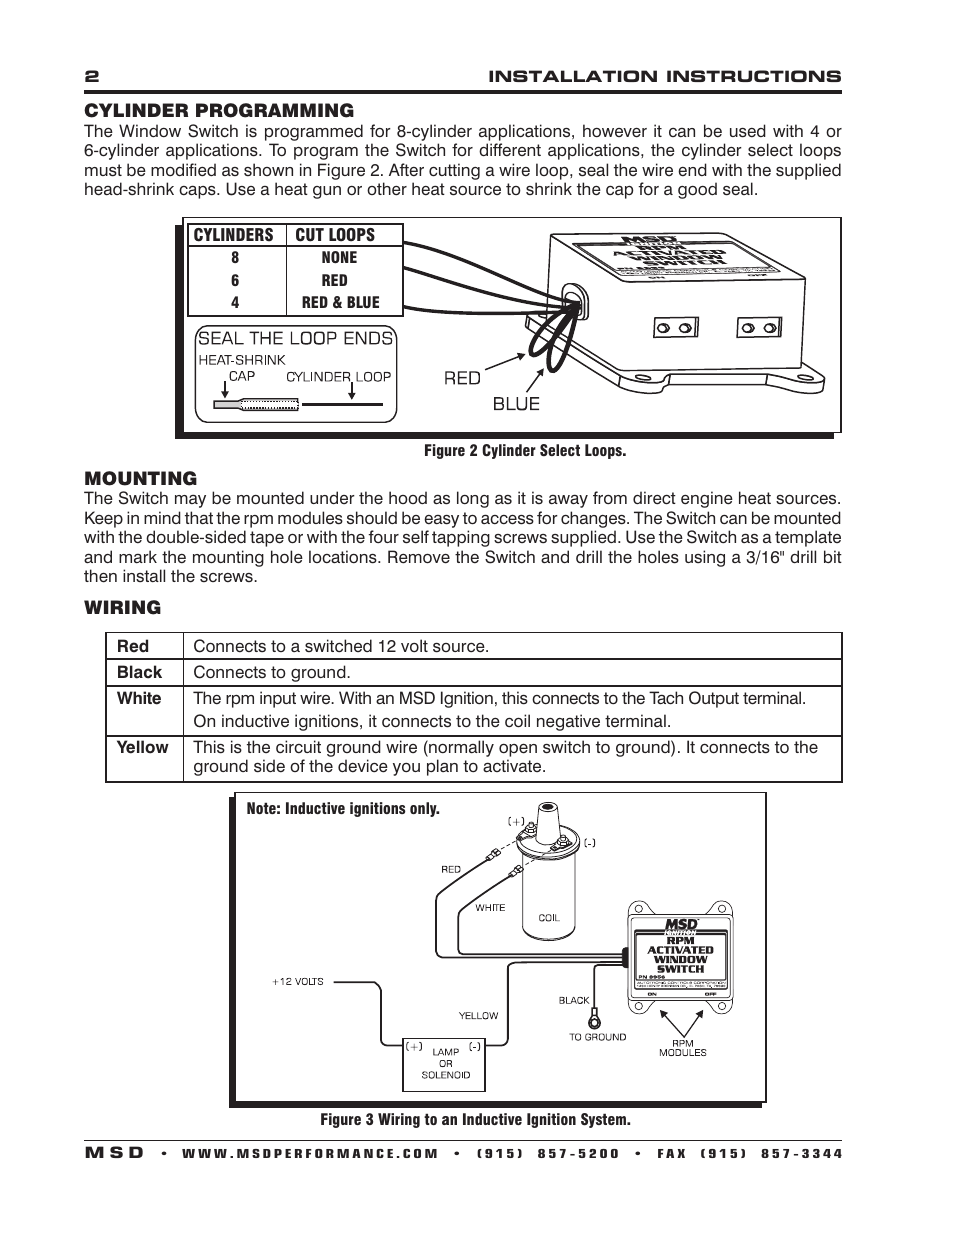 msd rpm switch wiring diagram msd 8956 window rpm activated switch installation user manual  msd 8956 window rpm activated switch